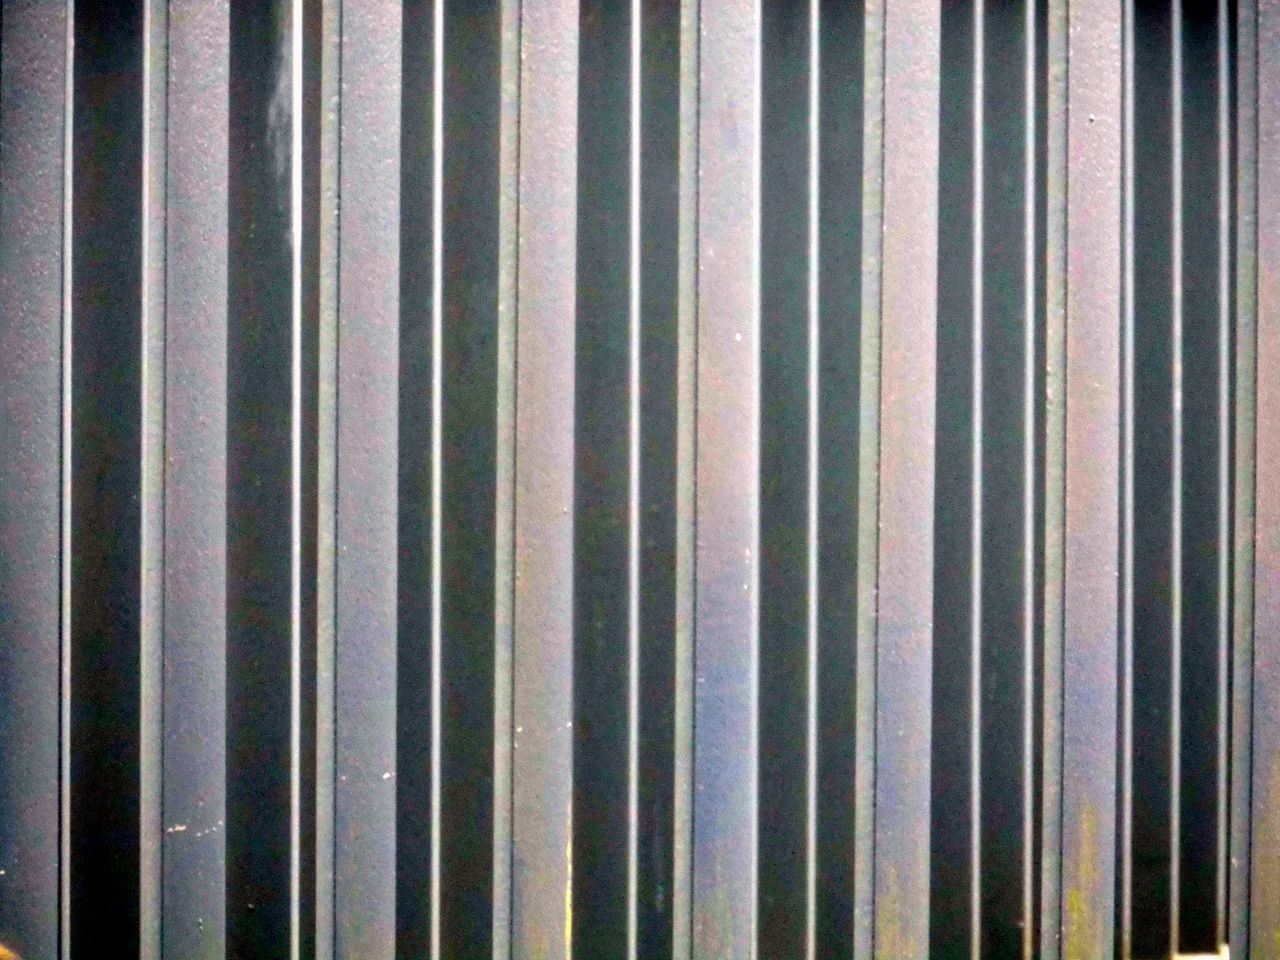 backgrounds, metal, pattern, full frame, corrugated iron, repetition, close-up, no people, day, textured, outdoors